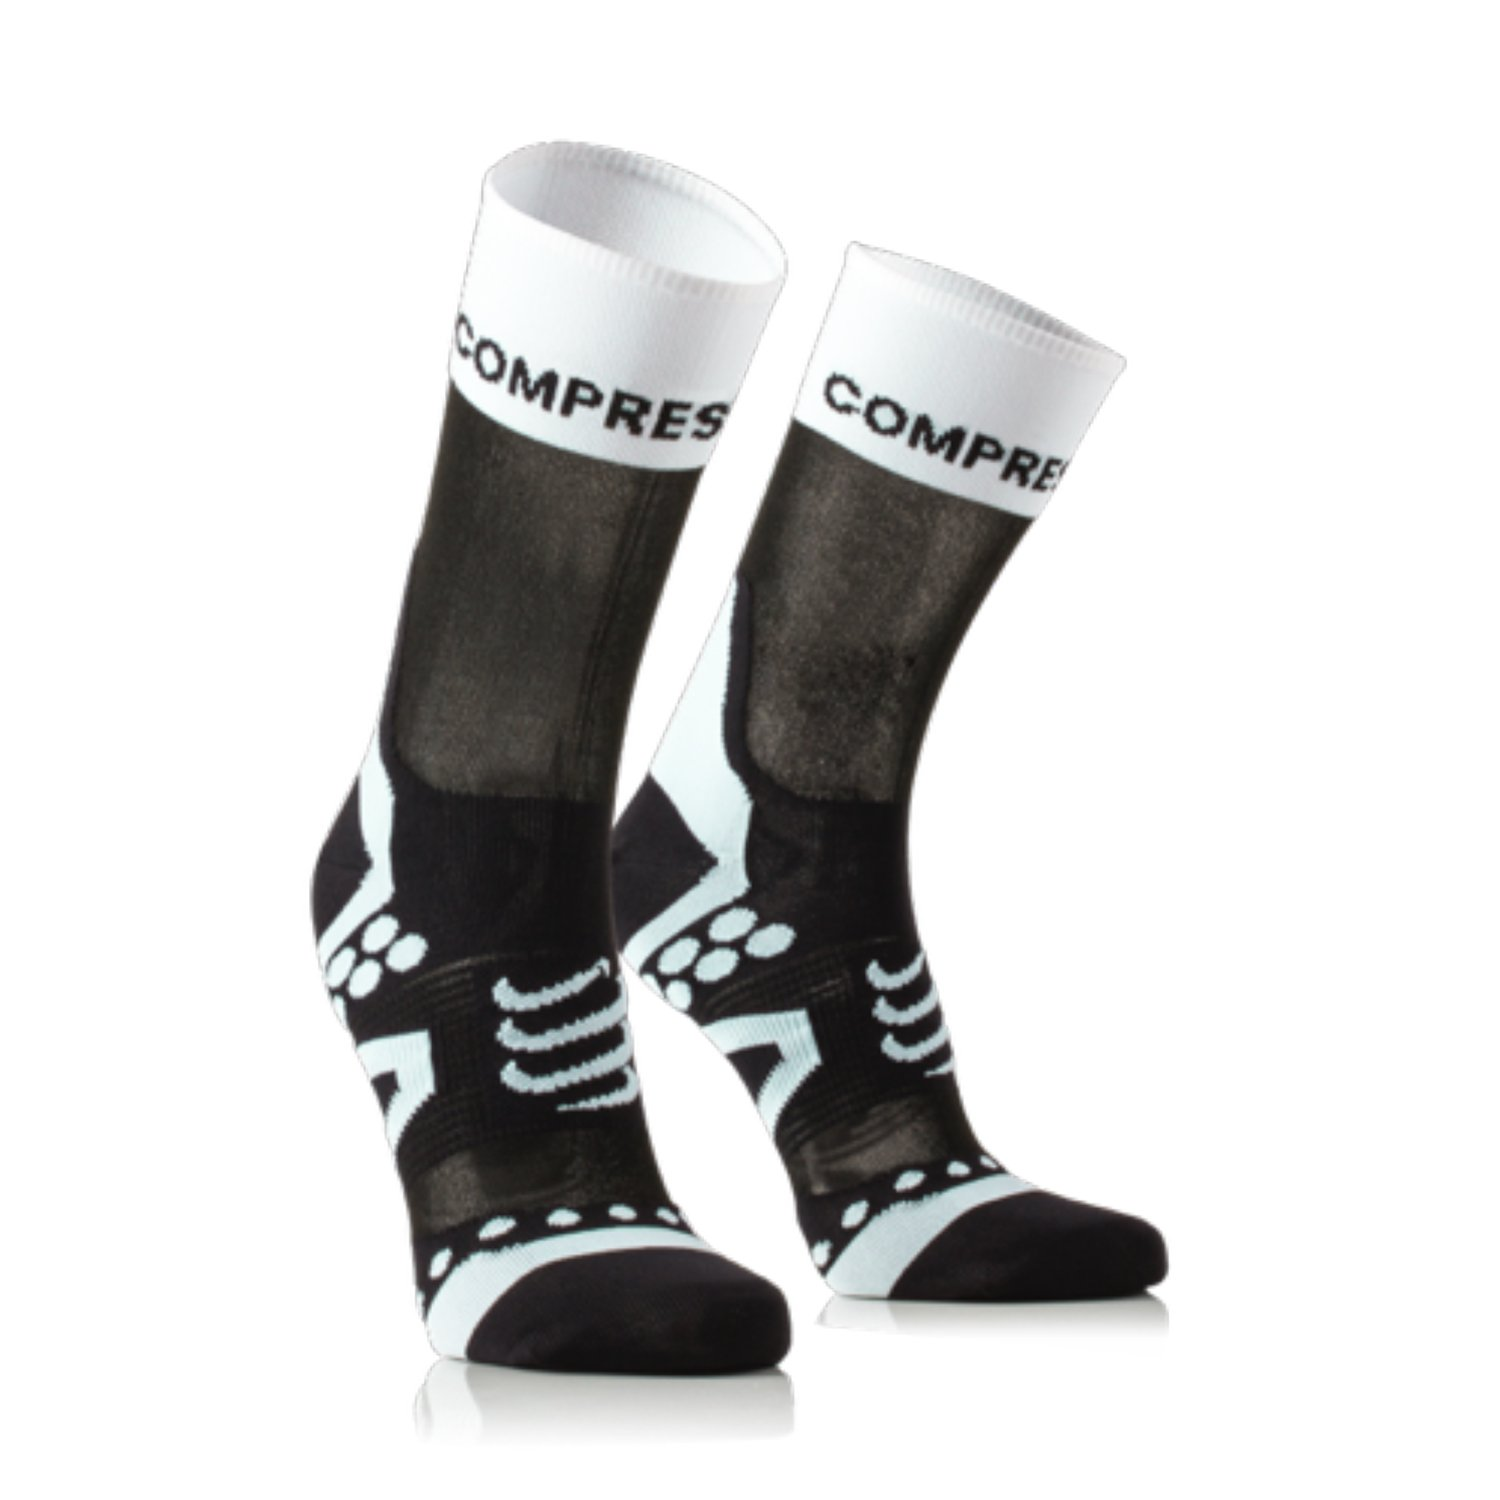 Compress port Bike Pro Racing Ultralight High Limited Edition 12 g – Calcetines de ciclismo: Amazon.es: Deportes y aire libre